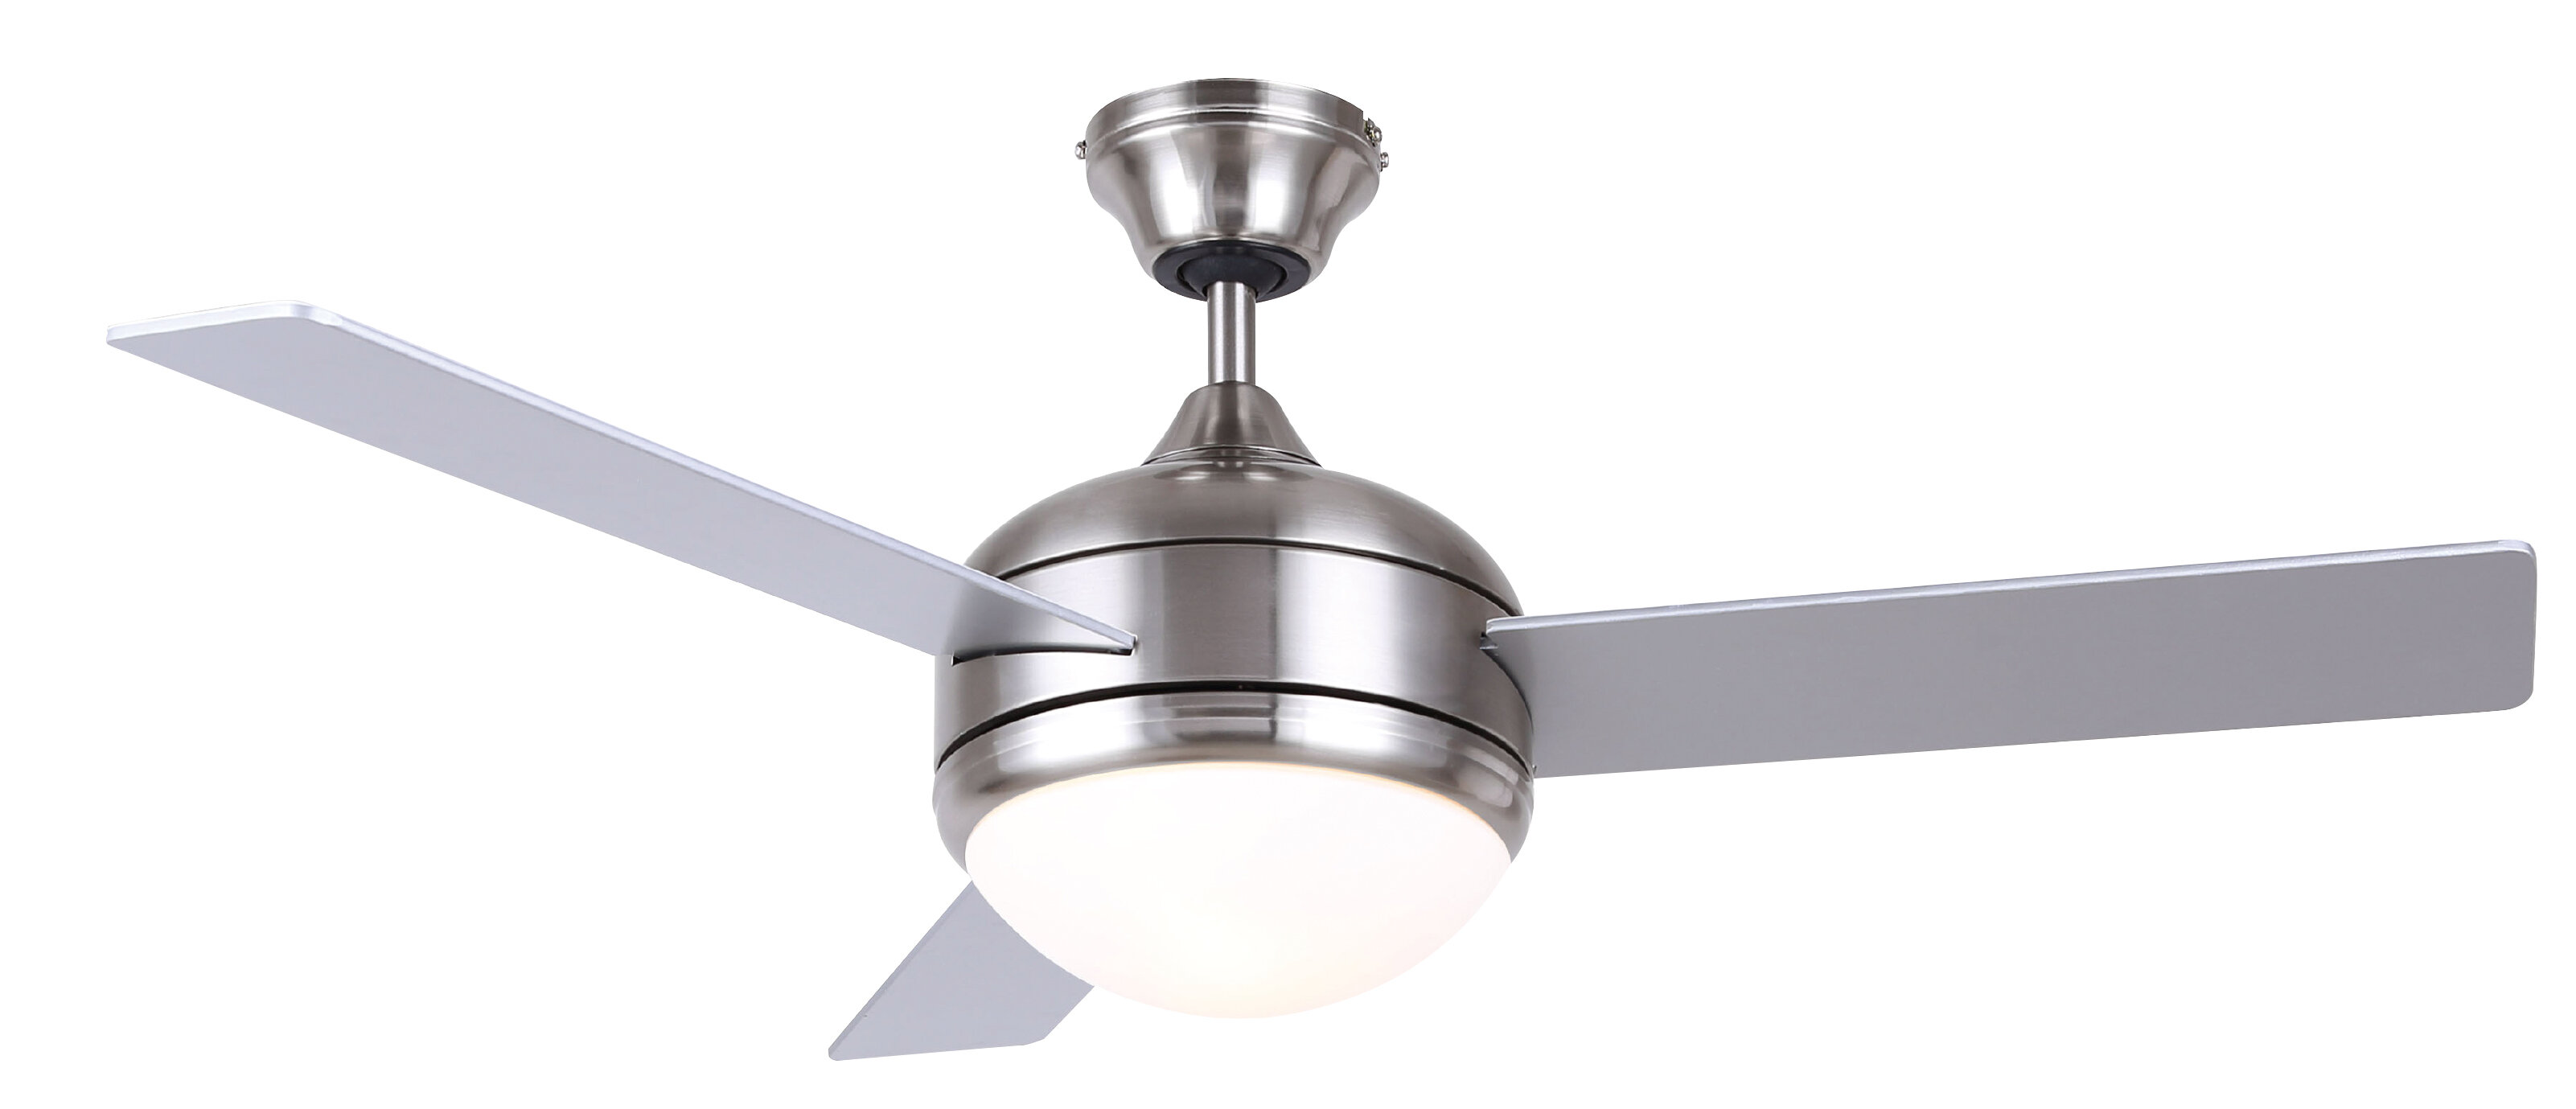 48 Dennis 3 Blade Standard Ceiling Fan With Remote Control And Light Kit Included Reviews Joss Main